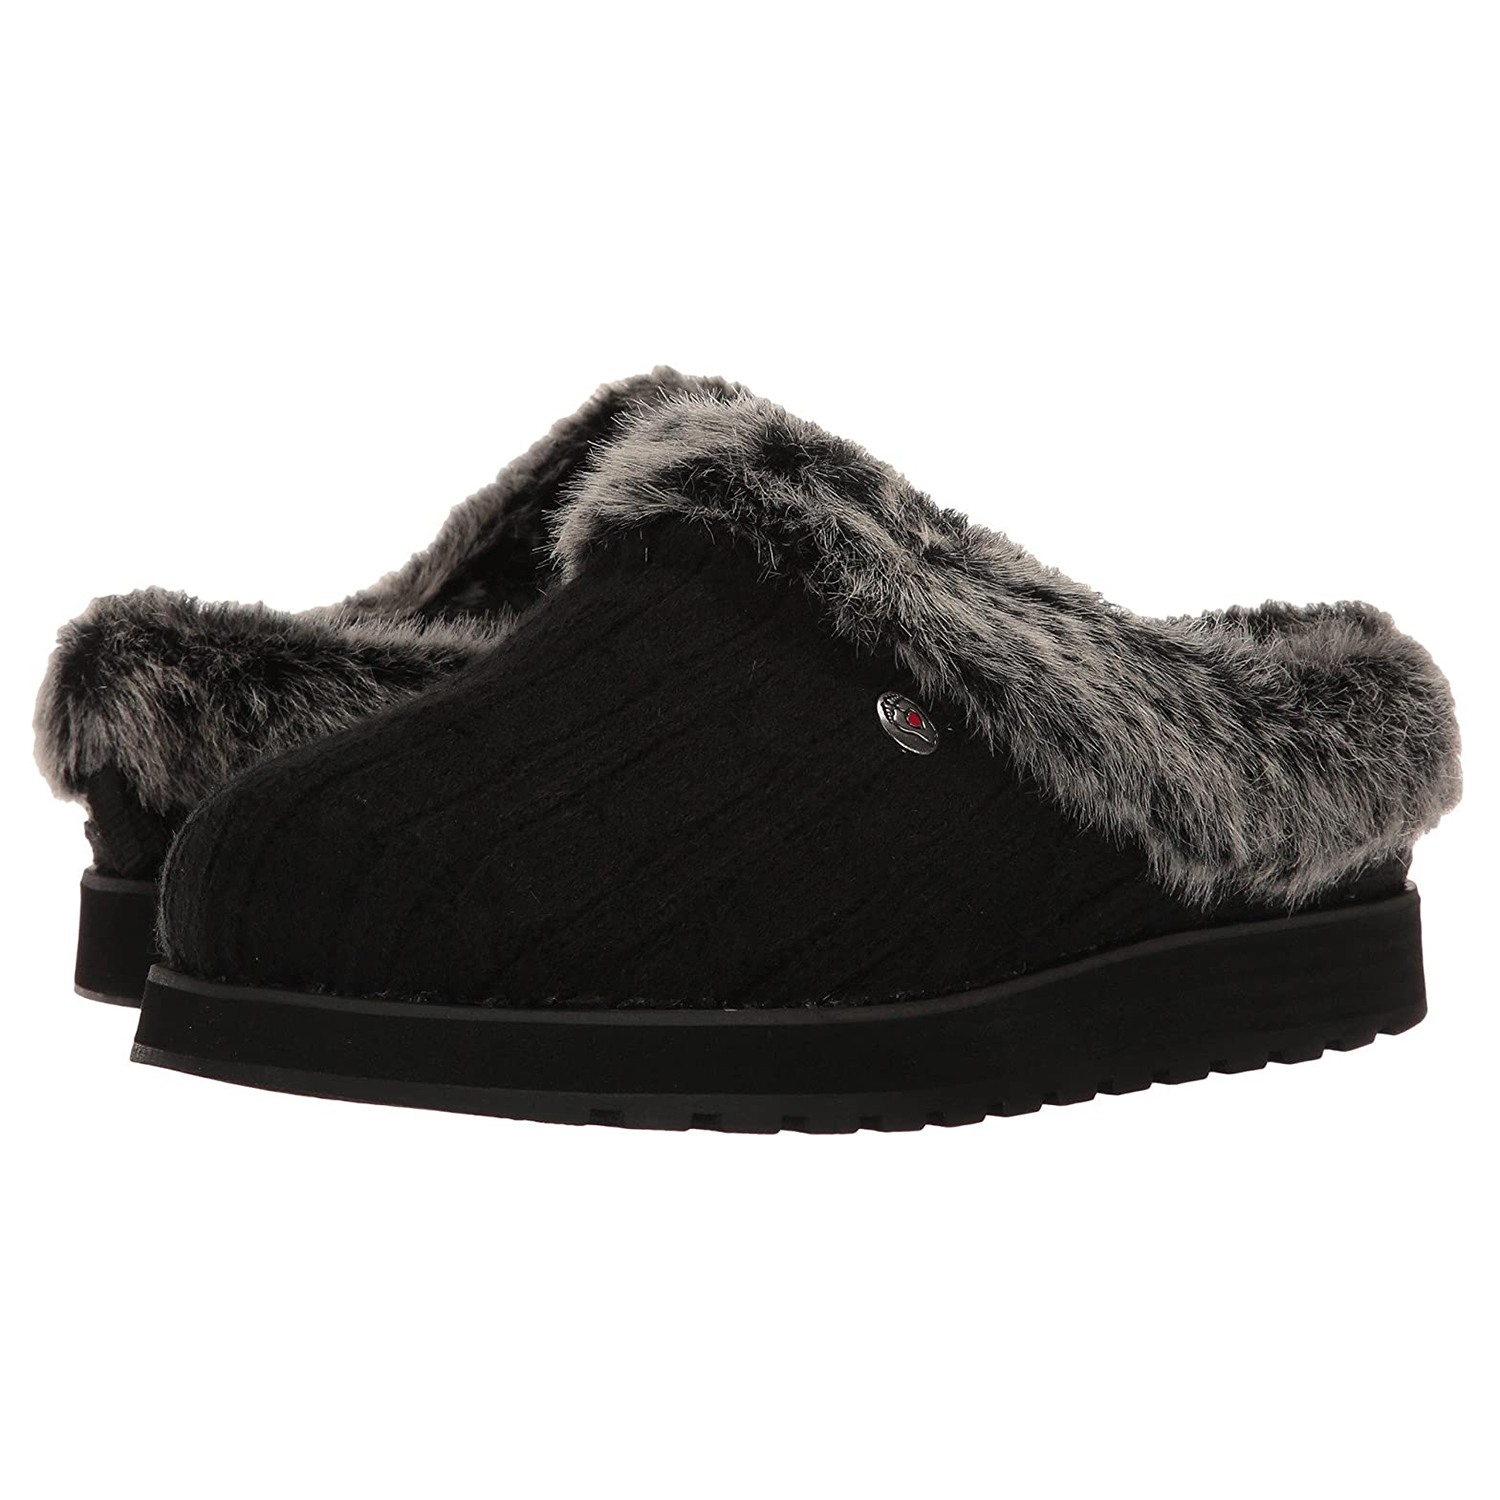 bobs from skechers slippers